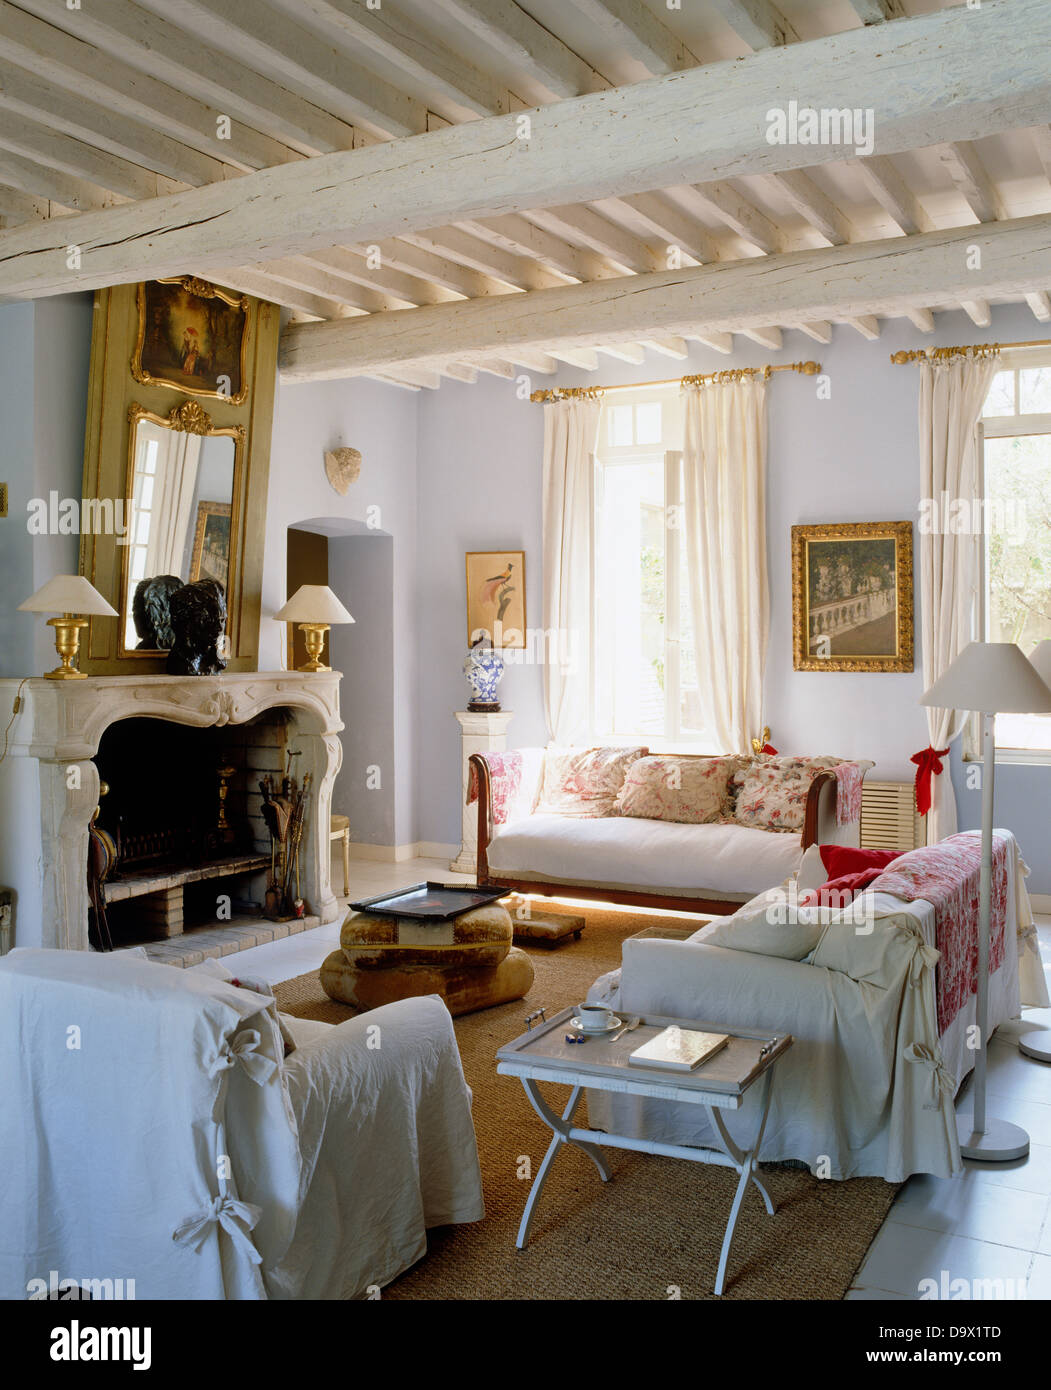 living room covers chair setup white loose on armchair and sofas in french country with painted rustic beams mirror above fireplace